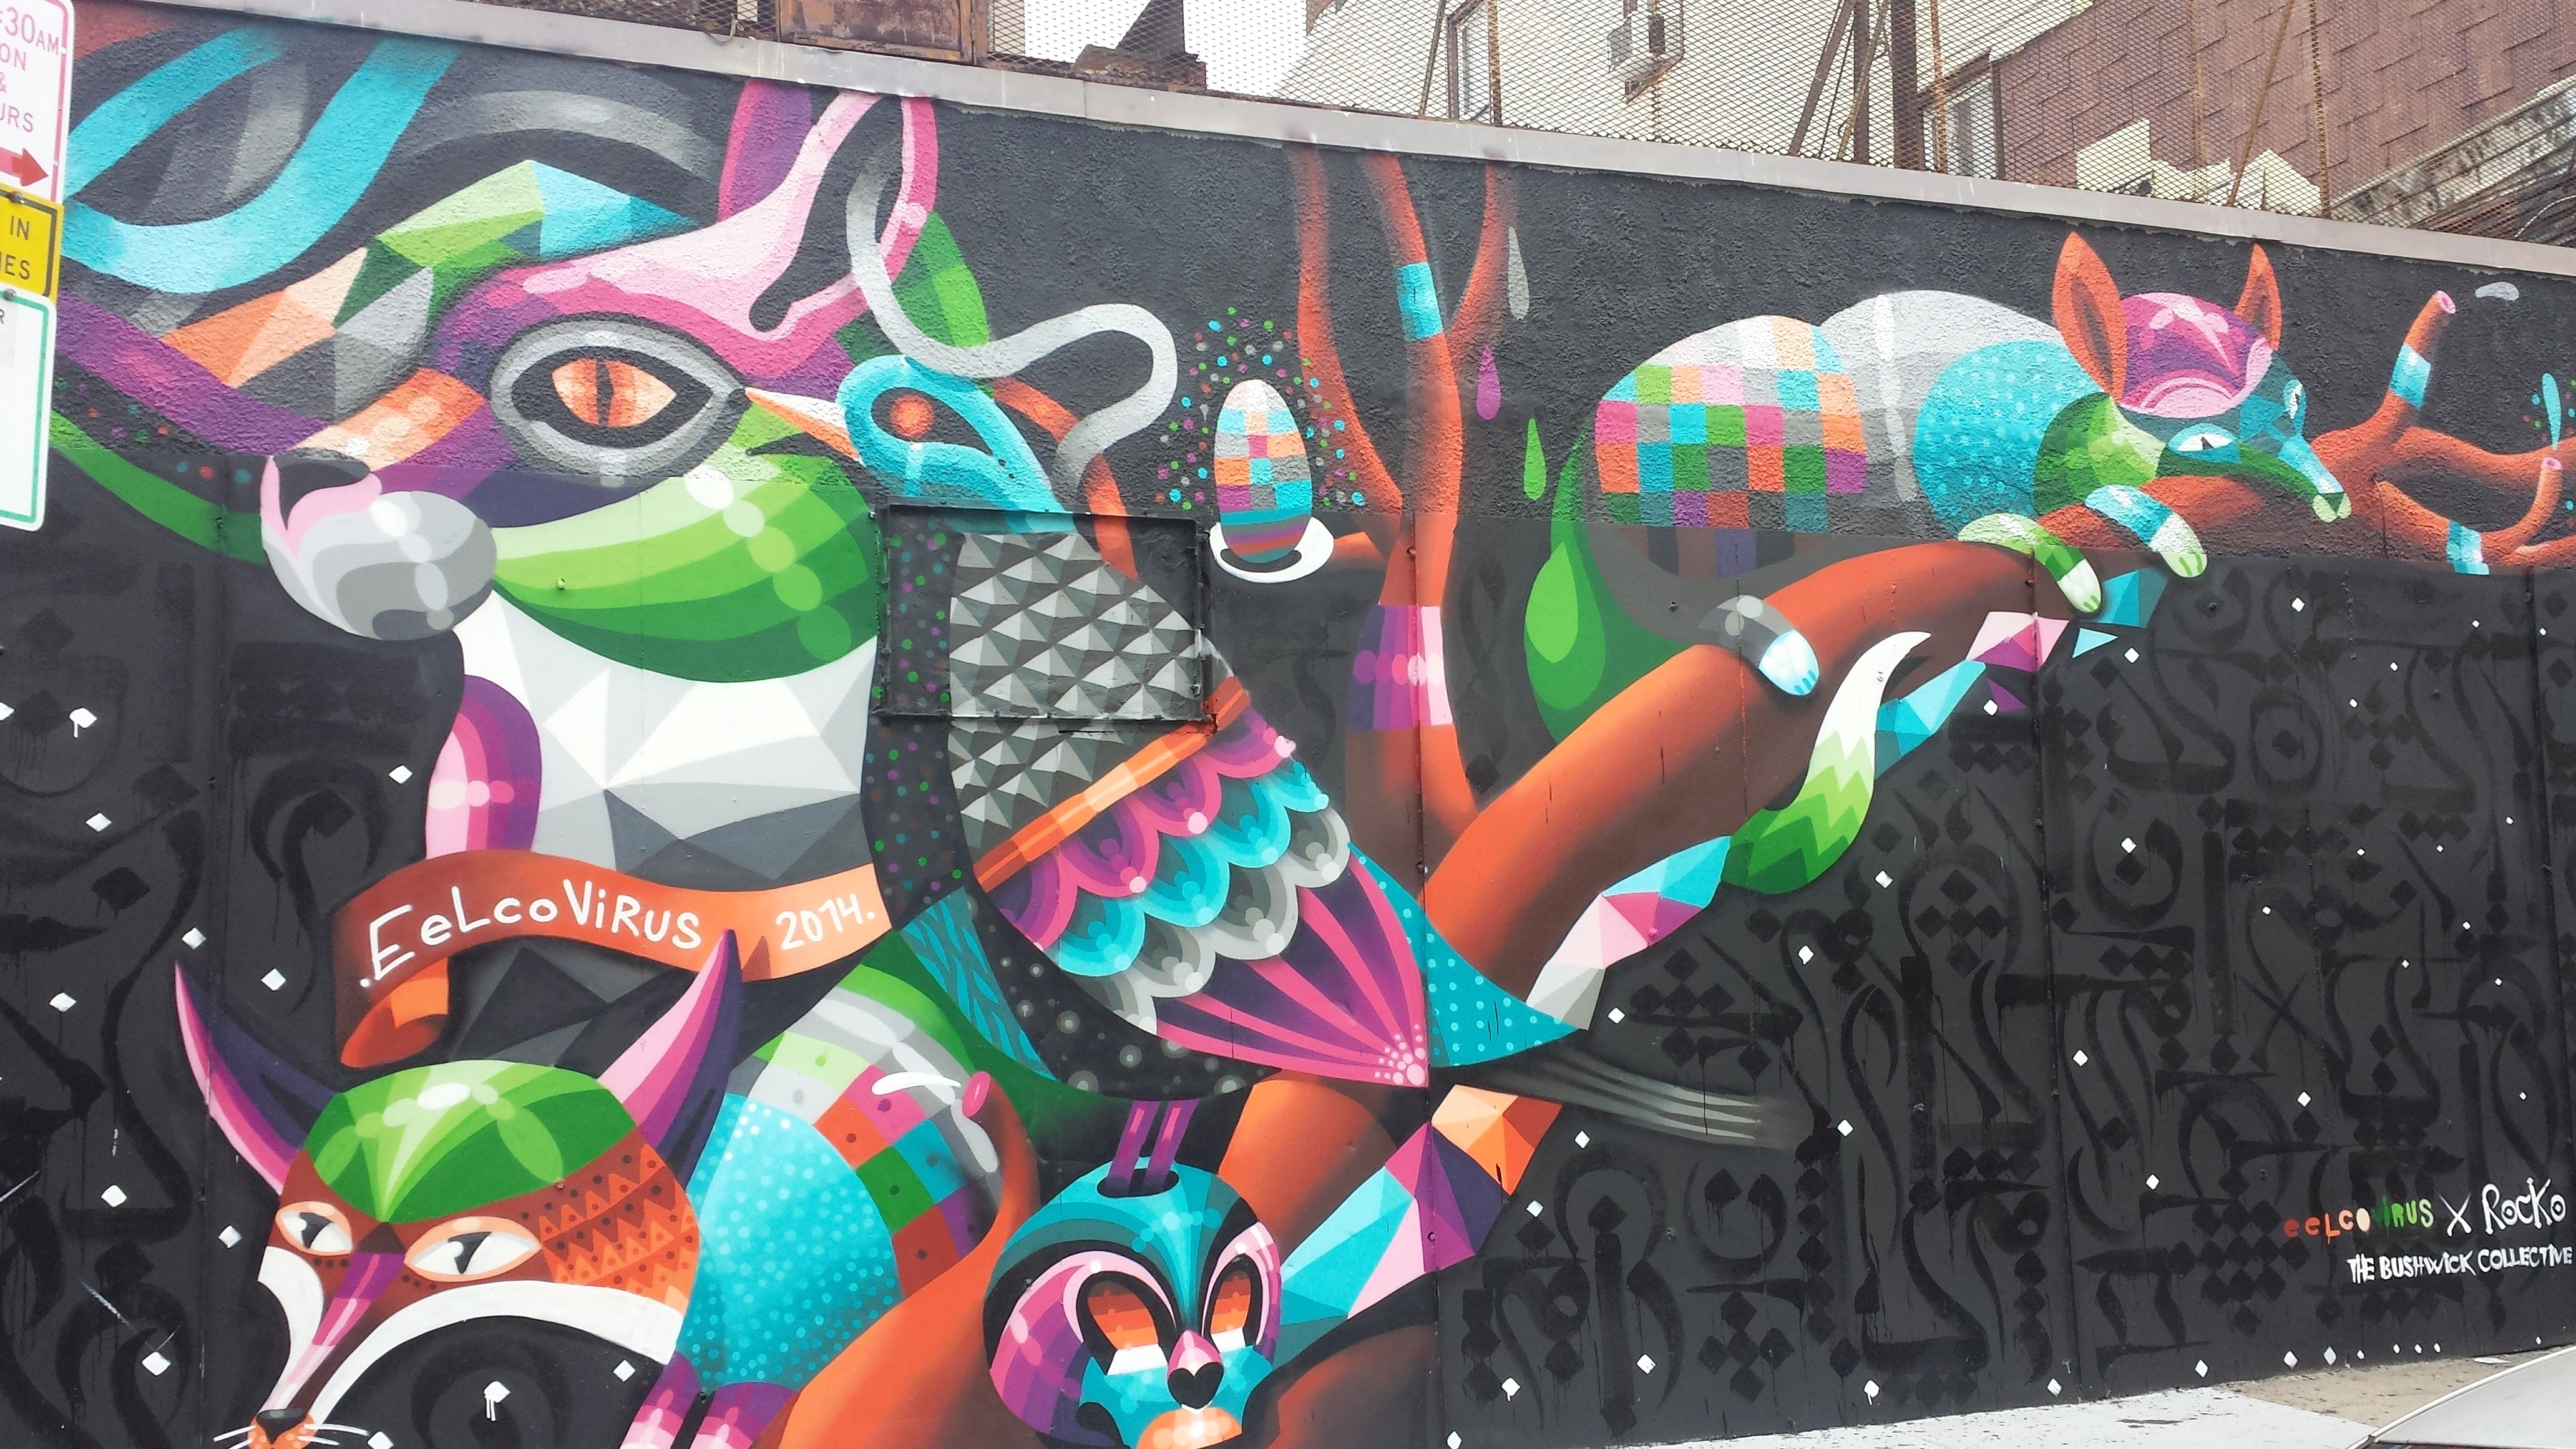 Eelco Virus and Rocko Collaboration wall